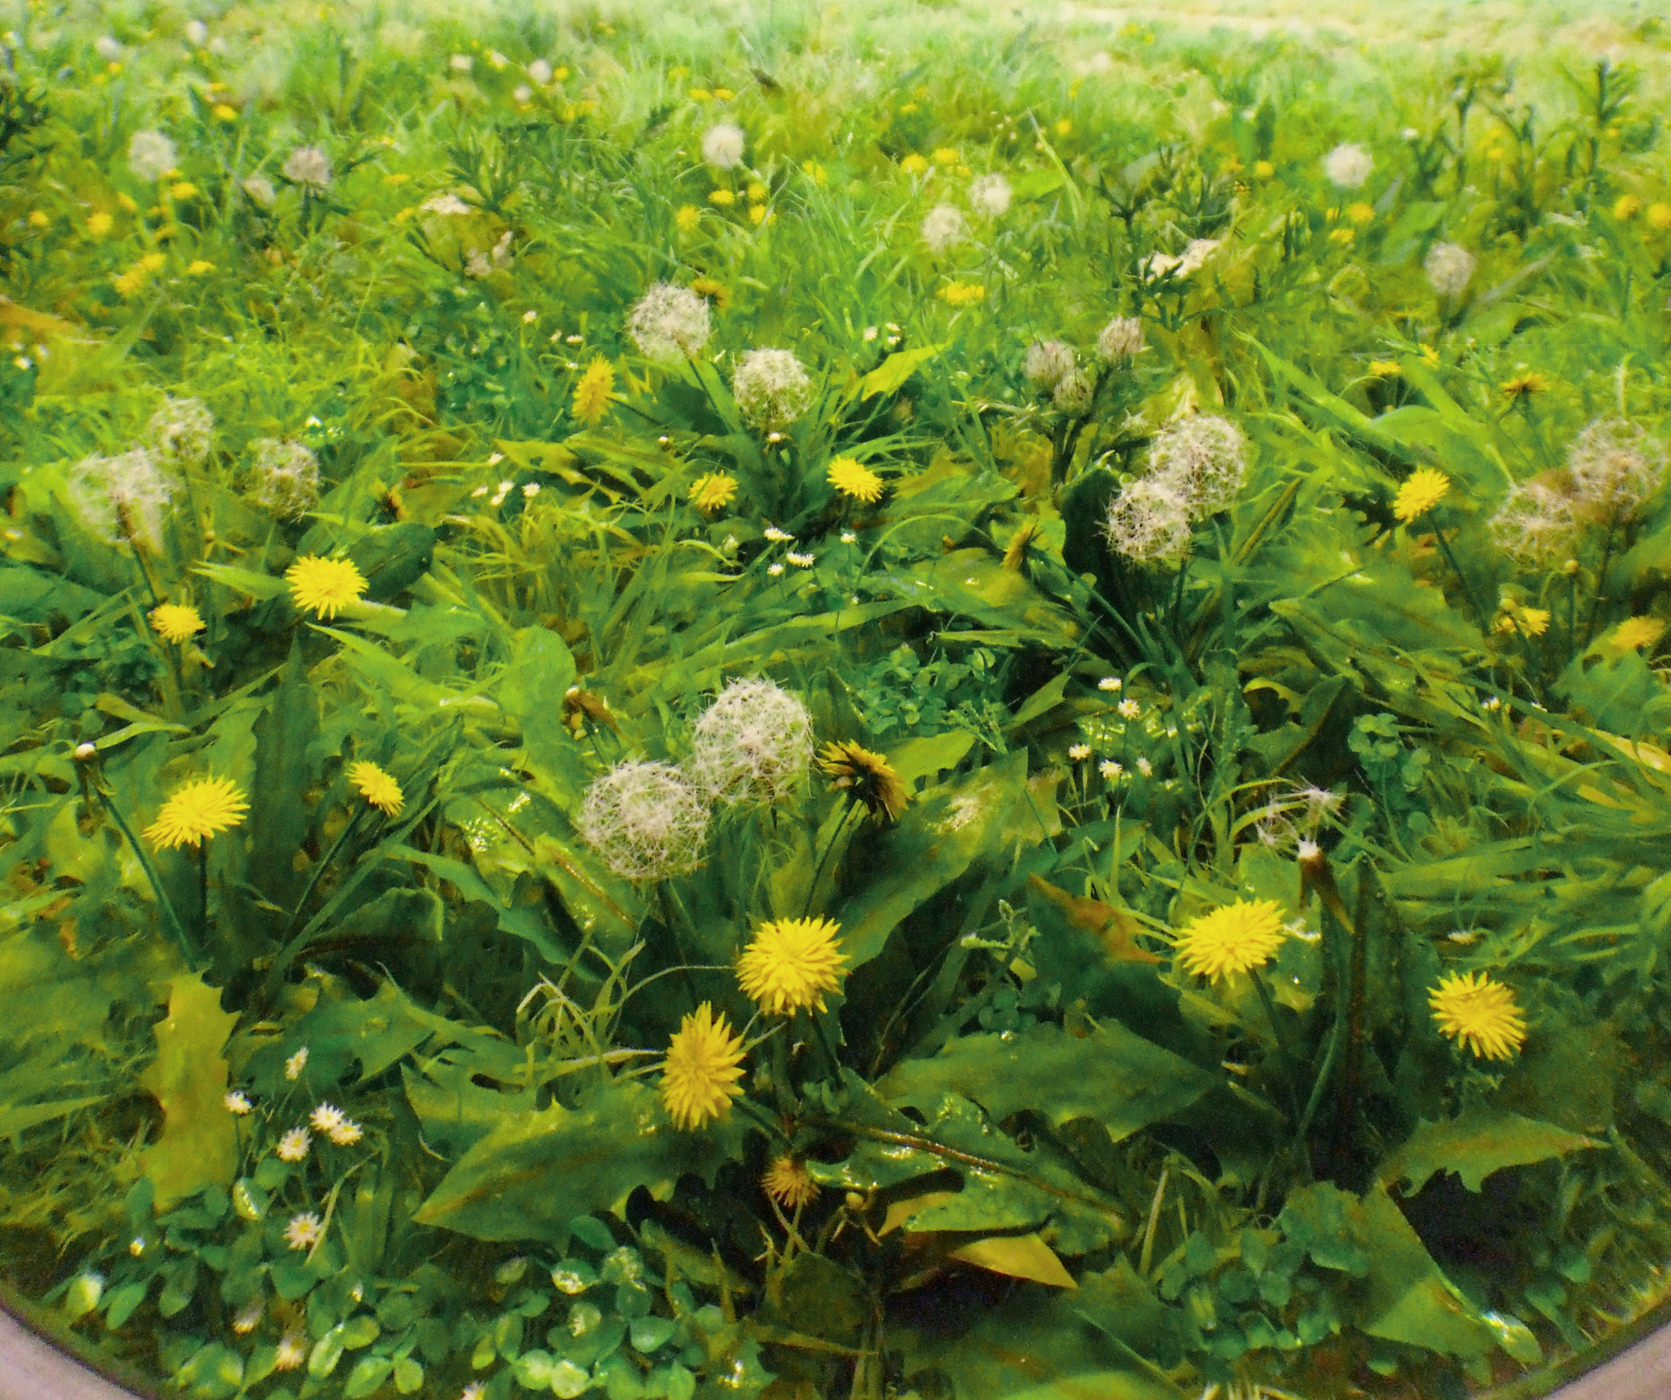 Detail: Field with Dandelions, 2015